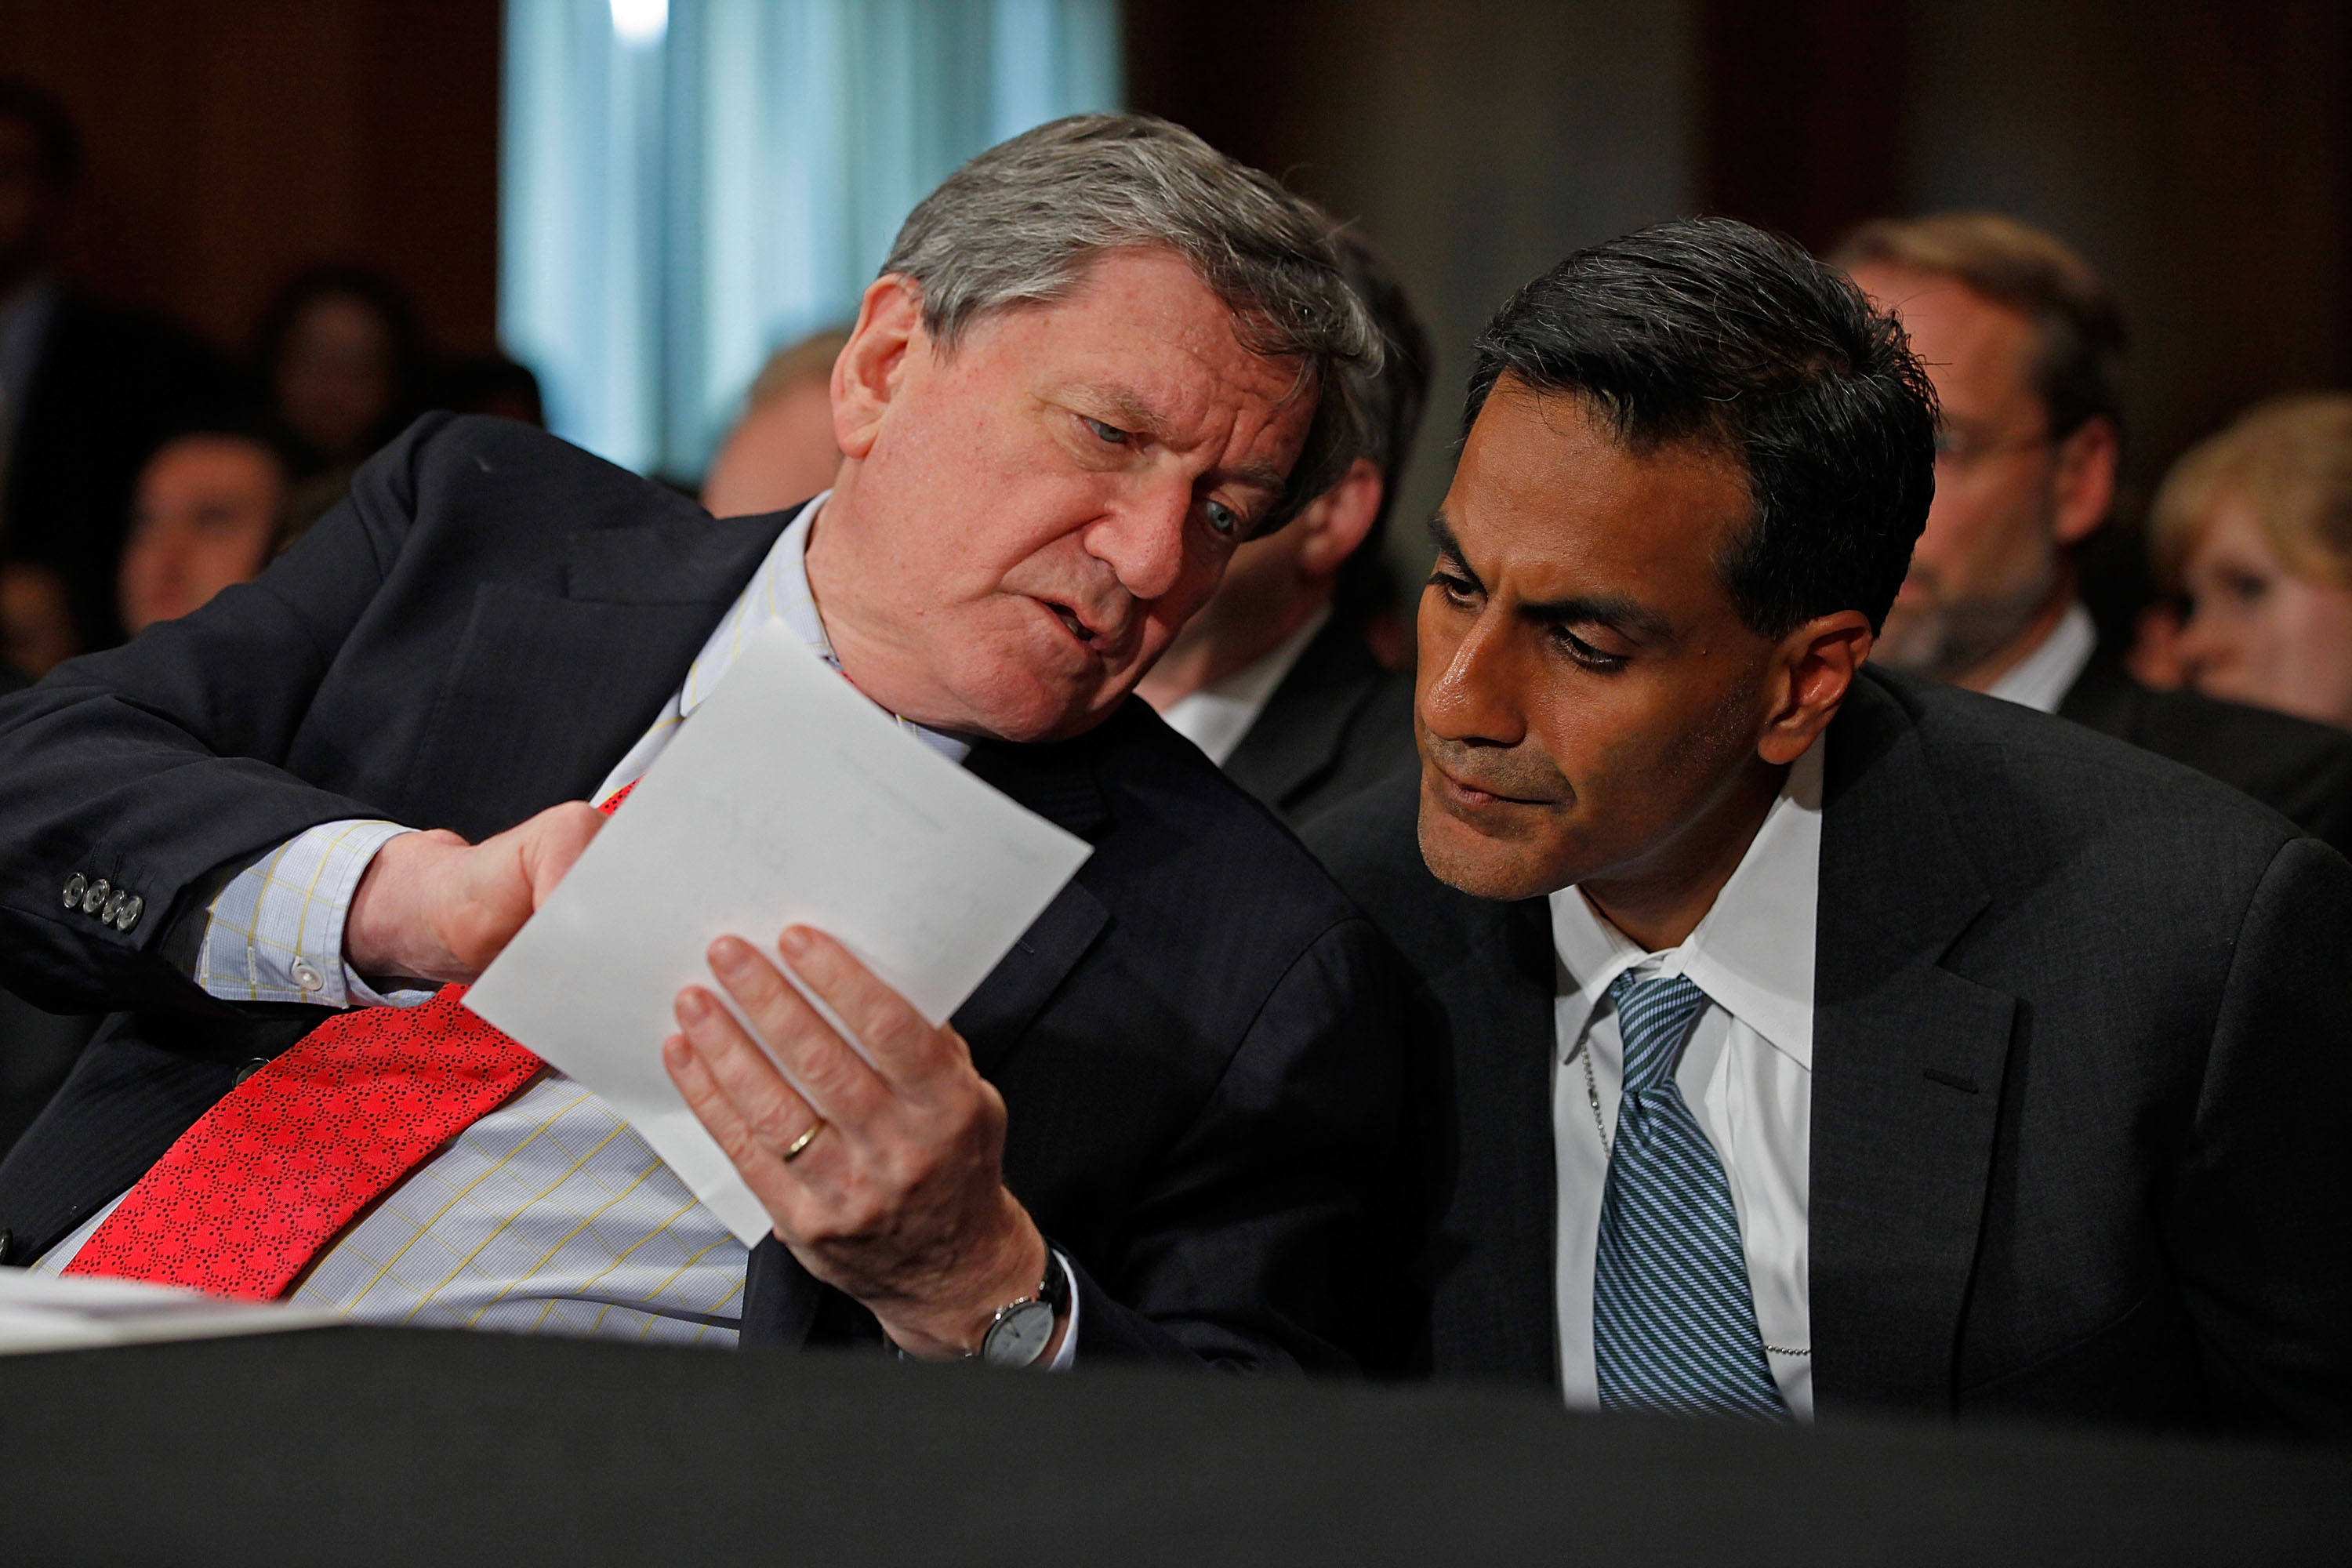 Richard Verma in conversation with the late Richard Holbrooke, U.S. special representative for Afghanistan and Pakistan, while the latter testified before the Senate Foreign Relations Committee on Capitol Hill, in Washington, D.C., on July 14, 2010